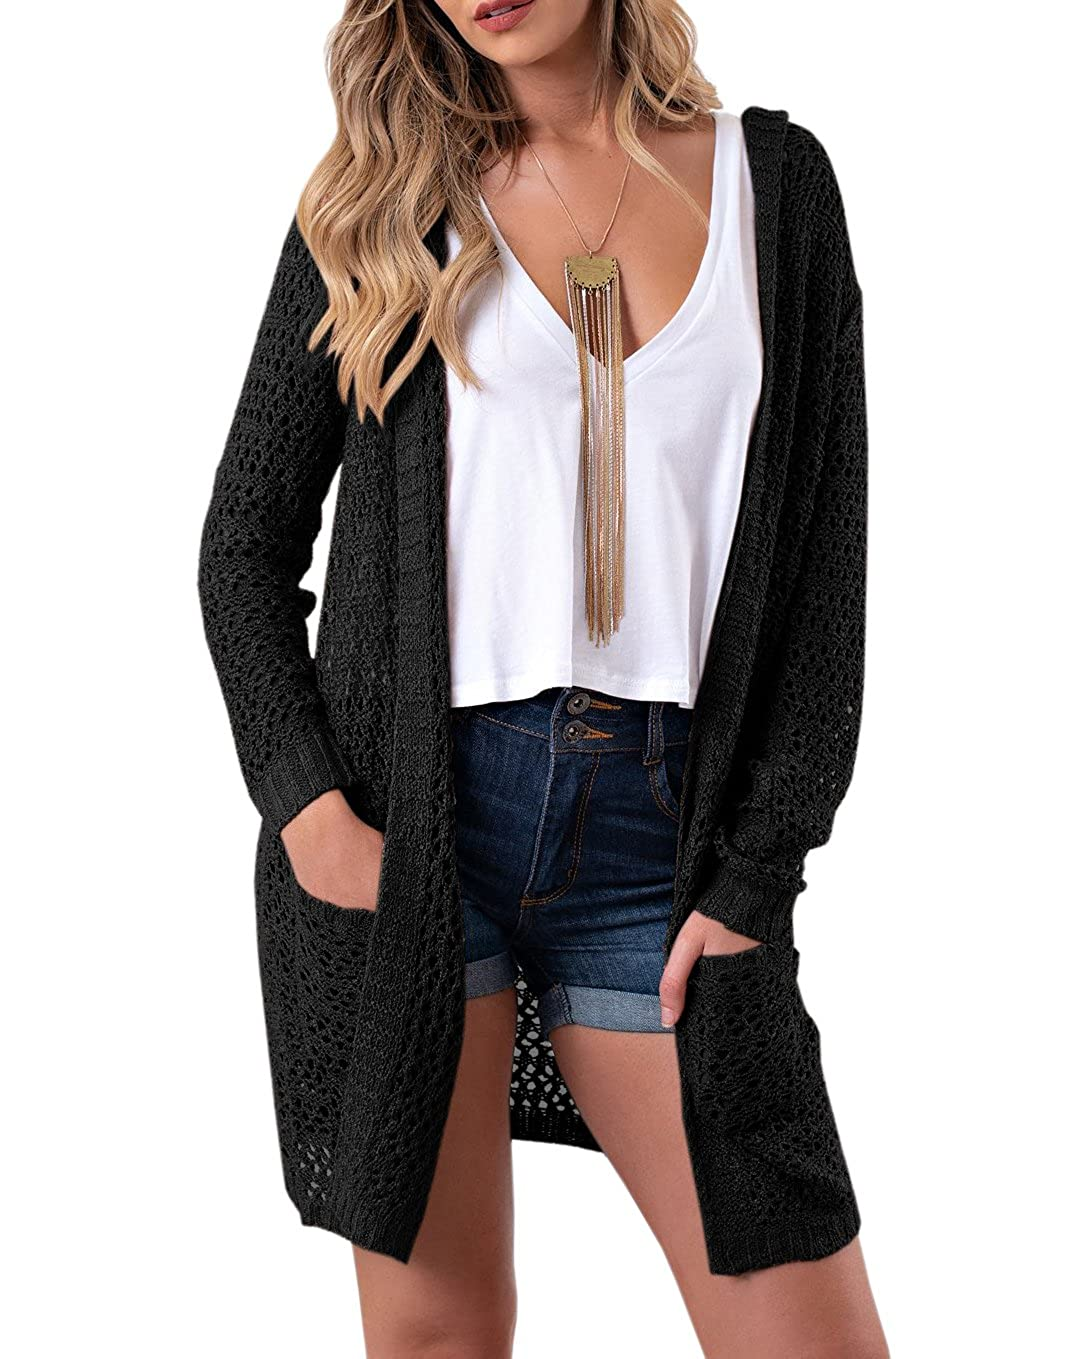 adc137077f Womens Long Sleeve Hollow Out Crochet Knitted Hooded Long Sweater Cardigans  Coat With Pocket Design  Hollow out crochet knitted cardigans